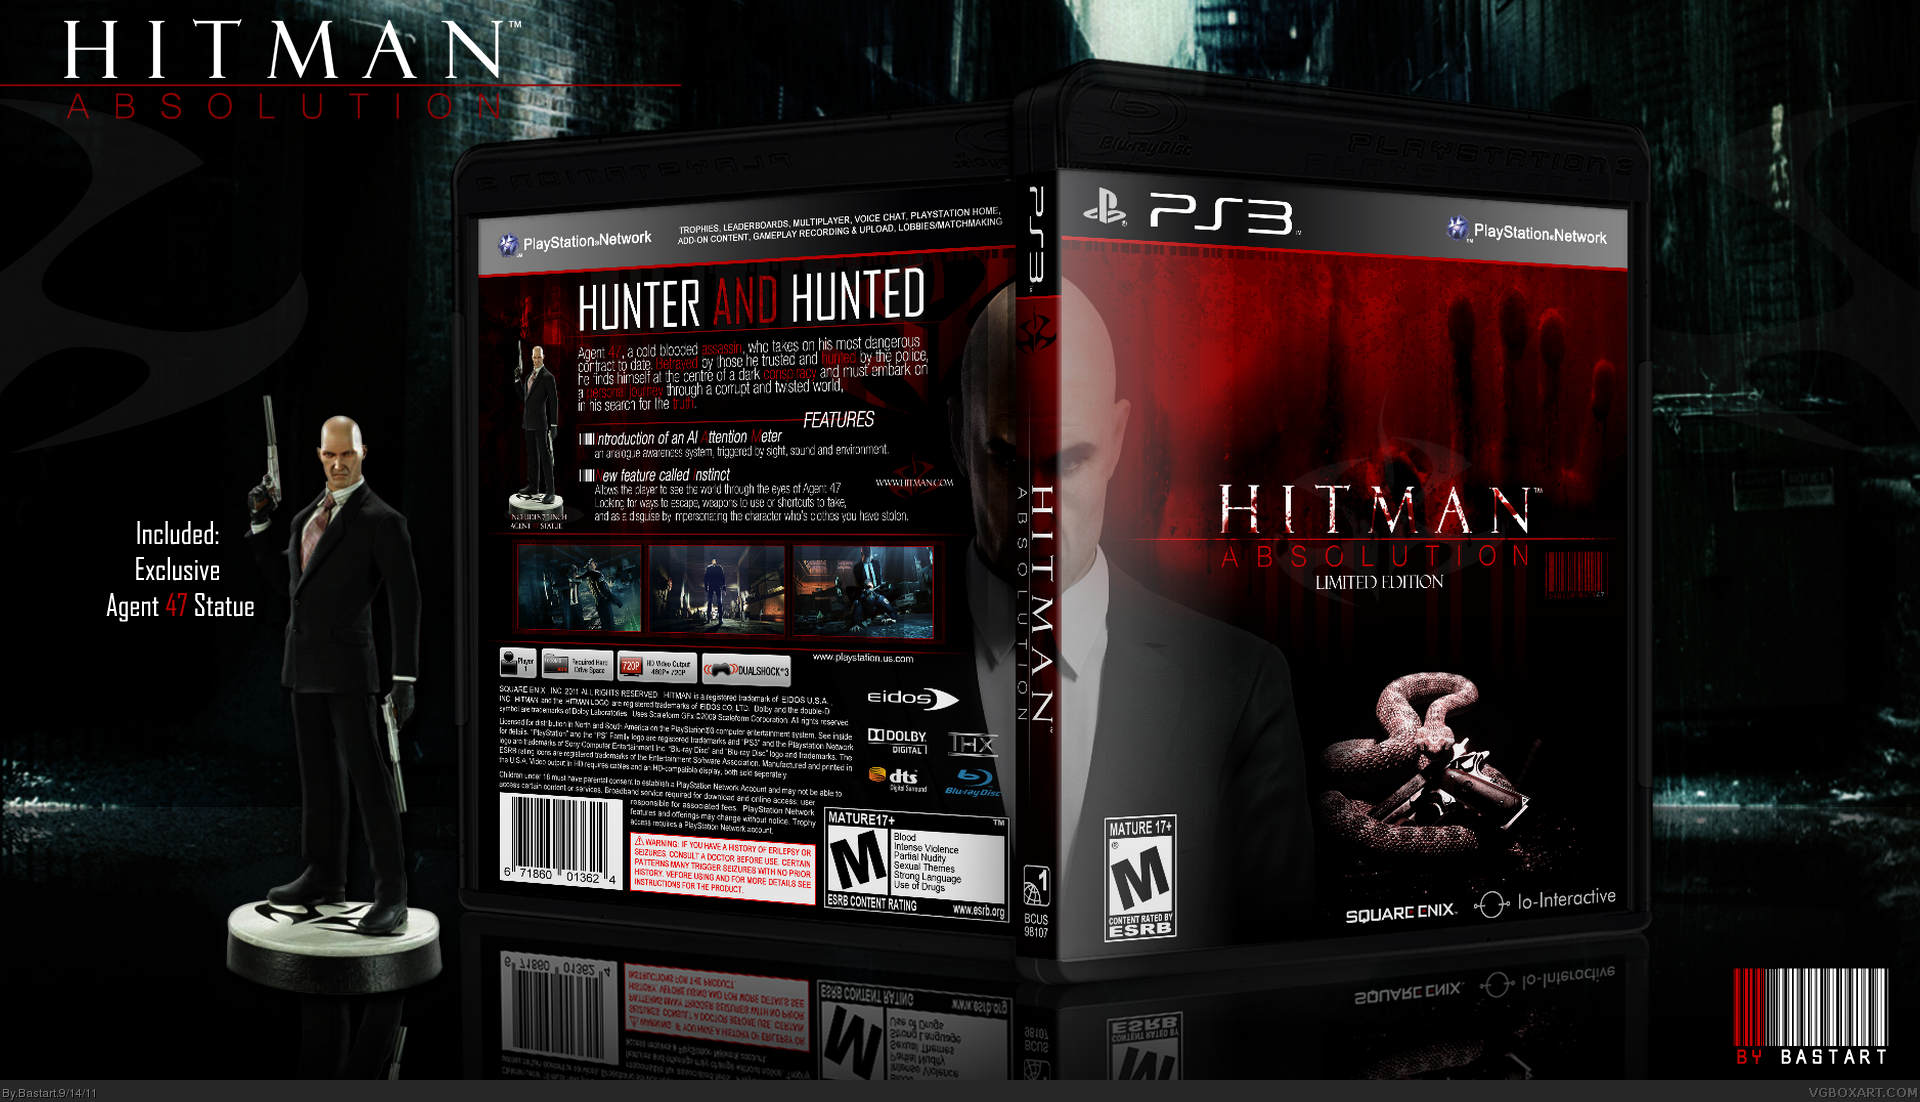 Hitman Absolution Fuse Box : Hitman absolution limited edition playstation box art